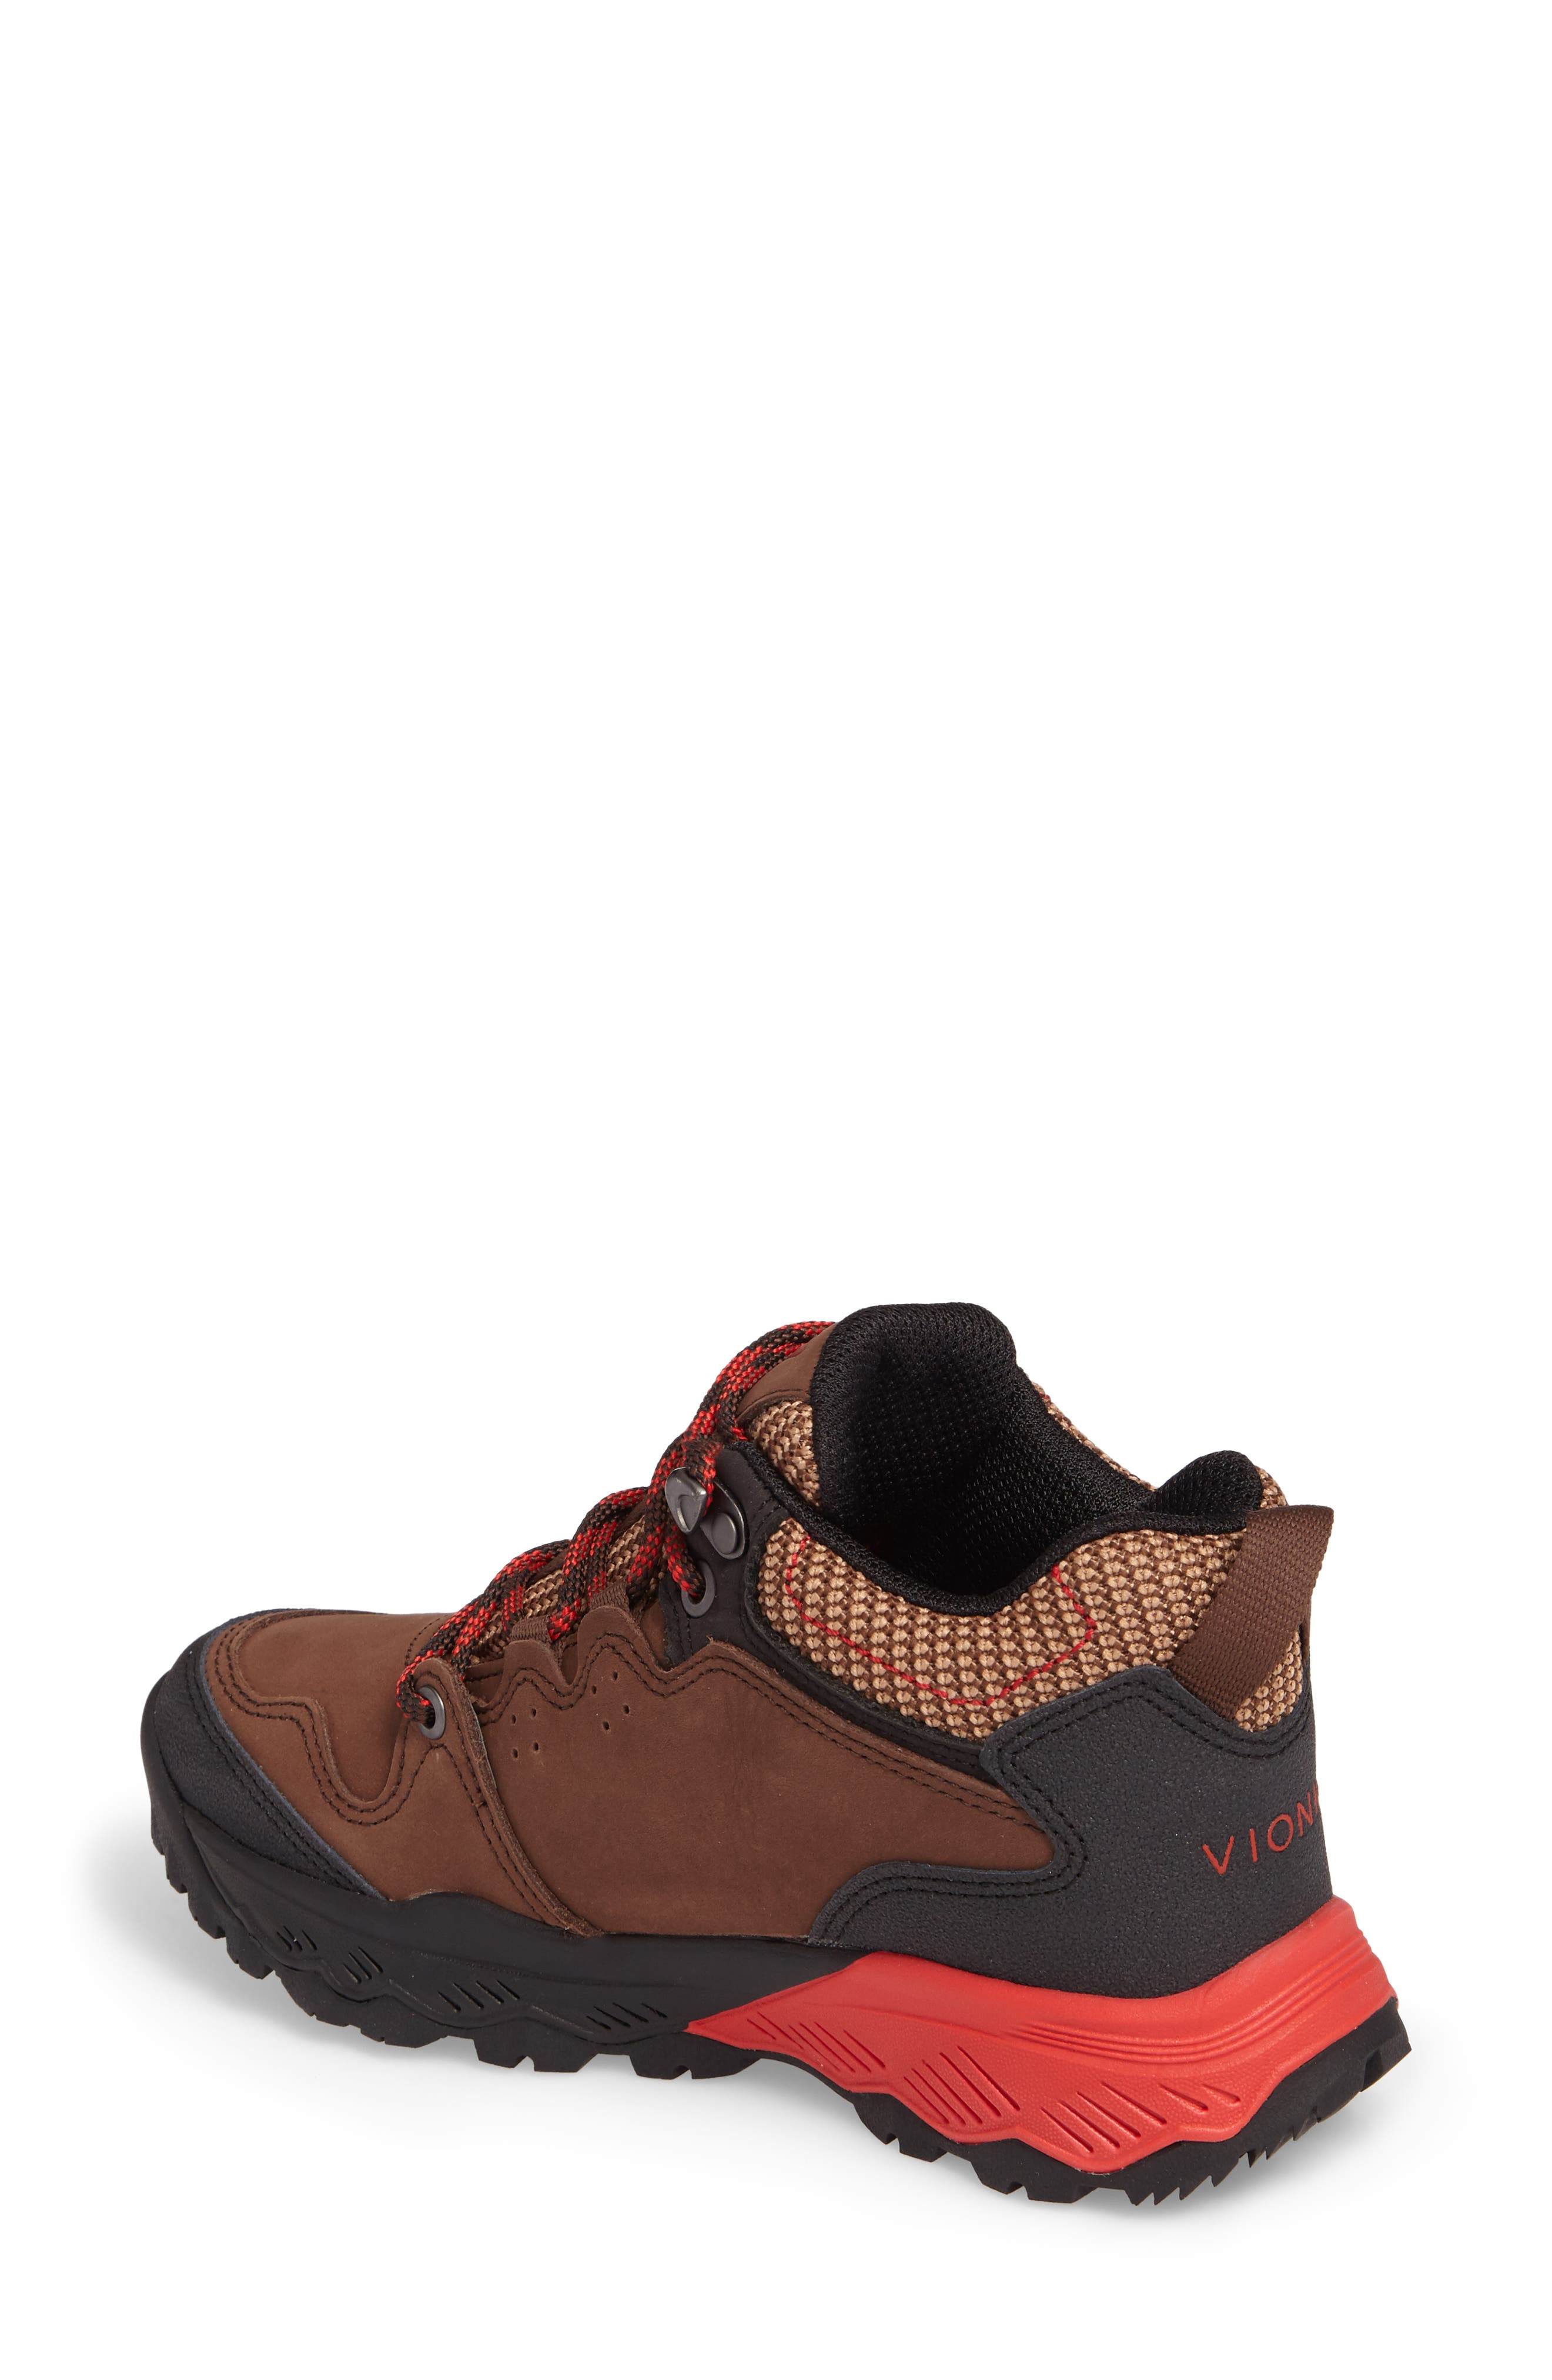 Everett Hiking Shoe,                             Alternate thumbnail 2, color,                             Brown / Red Leather